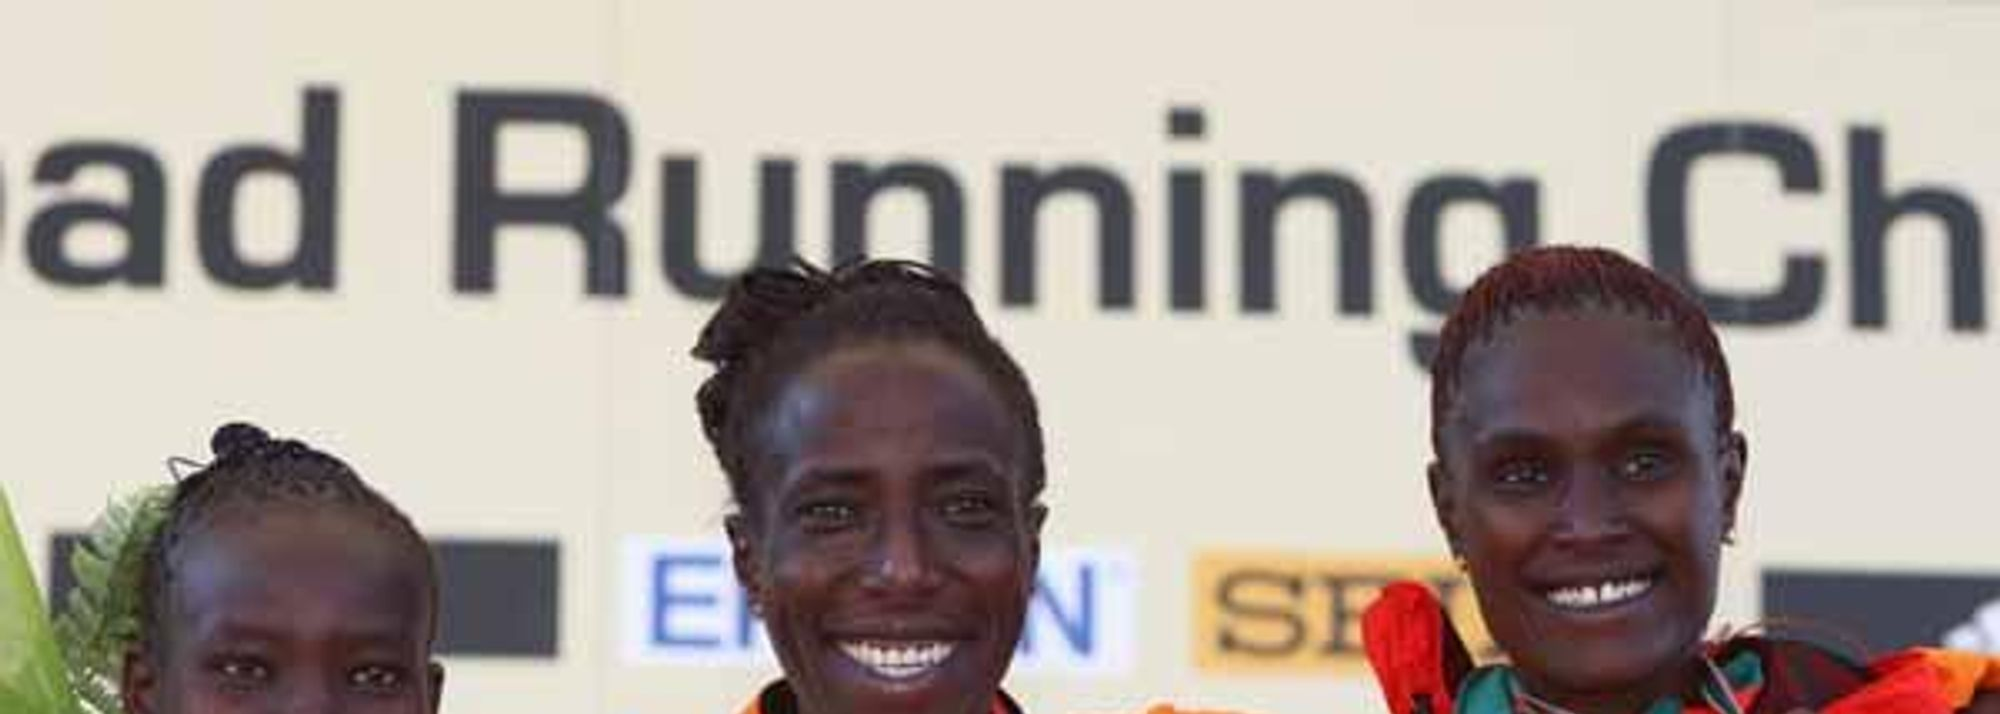 Two World records**, a winner's payment of US$30,000 and a World record bonus of US$50,000 can be described as a near perfect day for Holland's Lornah Kiplagat at the IAAF World Road Running Championships which were contested today in this north eastern Italian city.